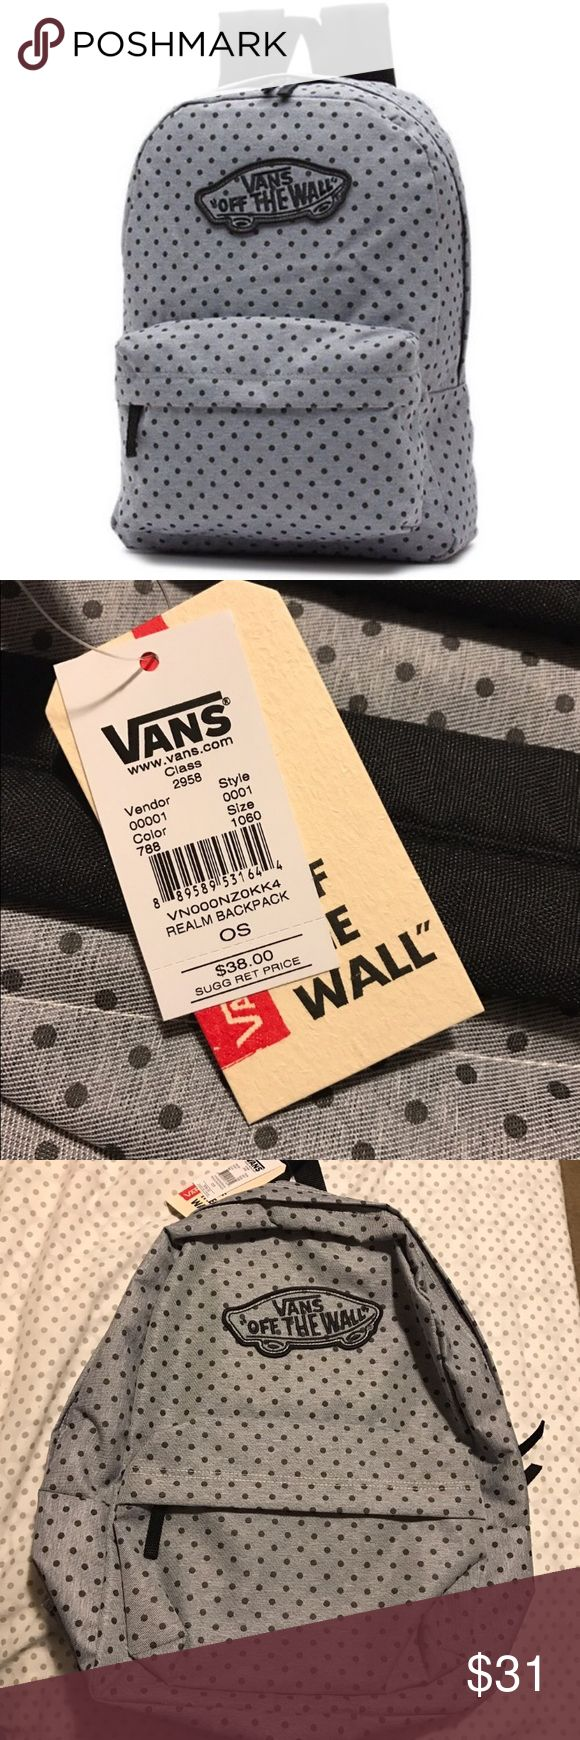 Vans Grey with dots backpack New with tags retails for $38 on the Vans website Vans Bags Backpacks